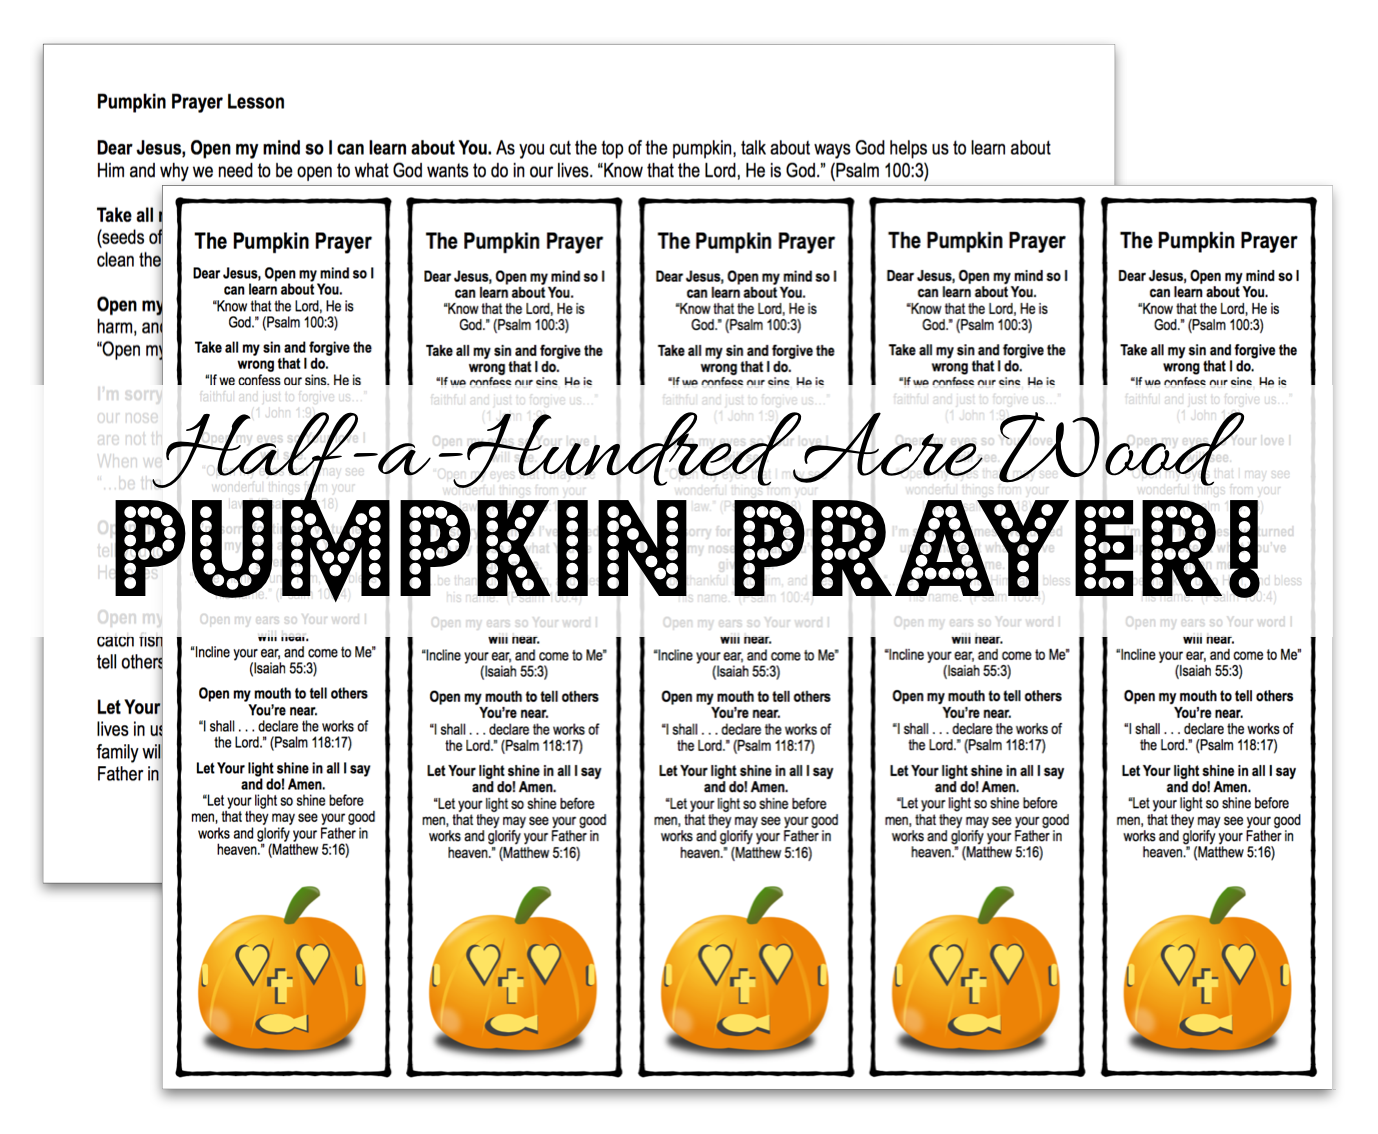 photo relating to Pumpkin Gospel Printable identify The Pumpkin Prayer Bookmarks and Lesson Printable : 50 % a